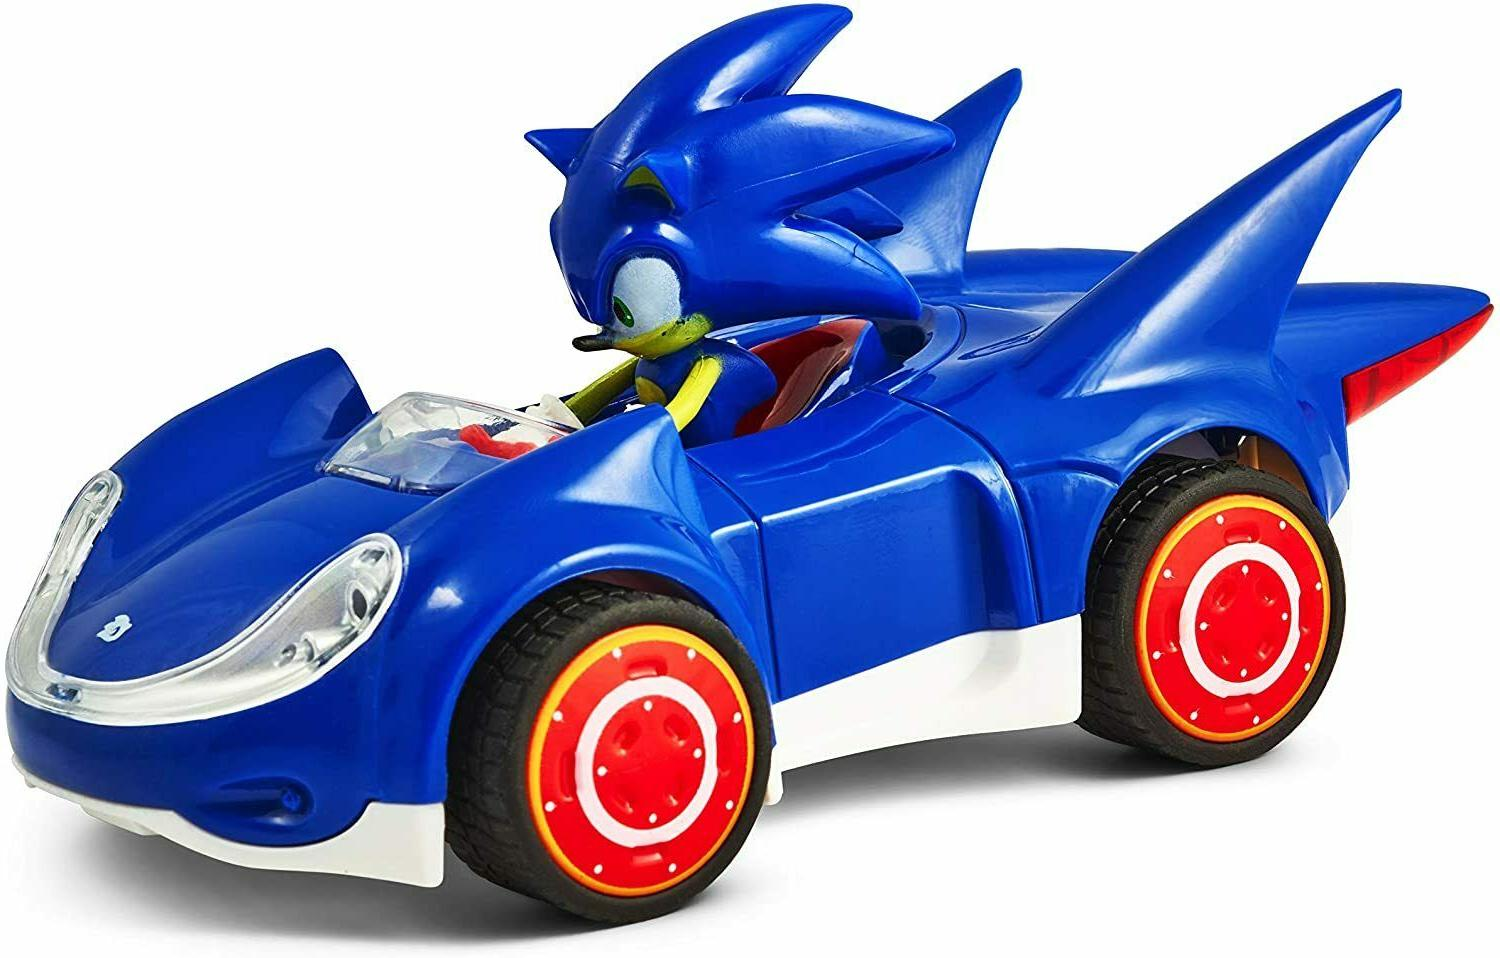 Sonic the Hedgehog All Star Action Car Toy